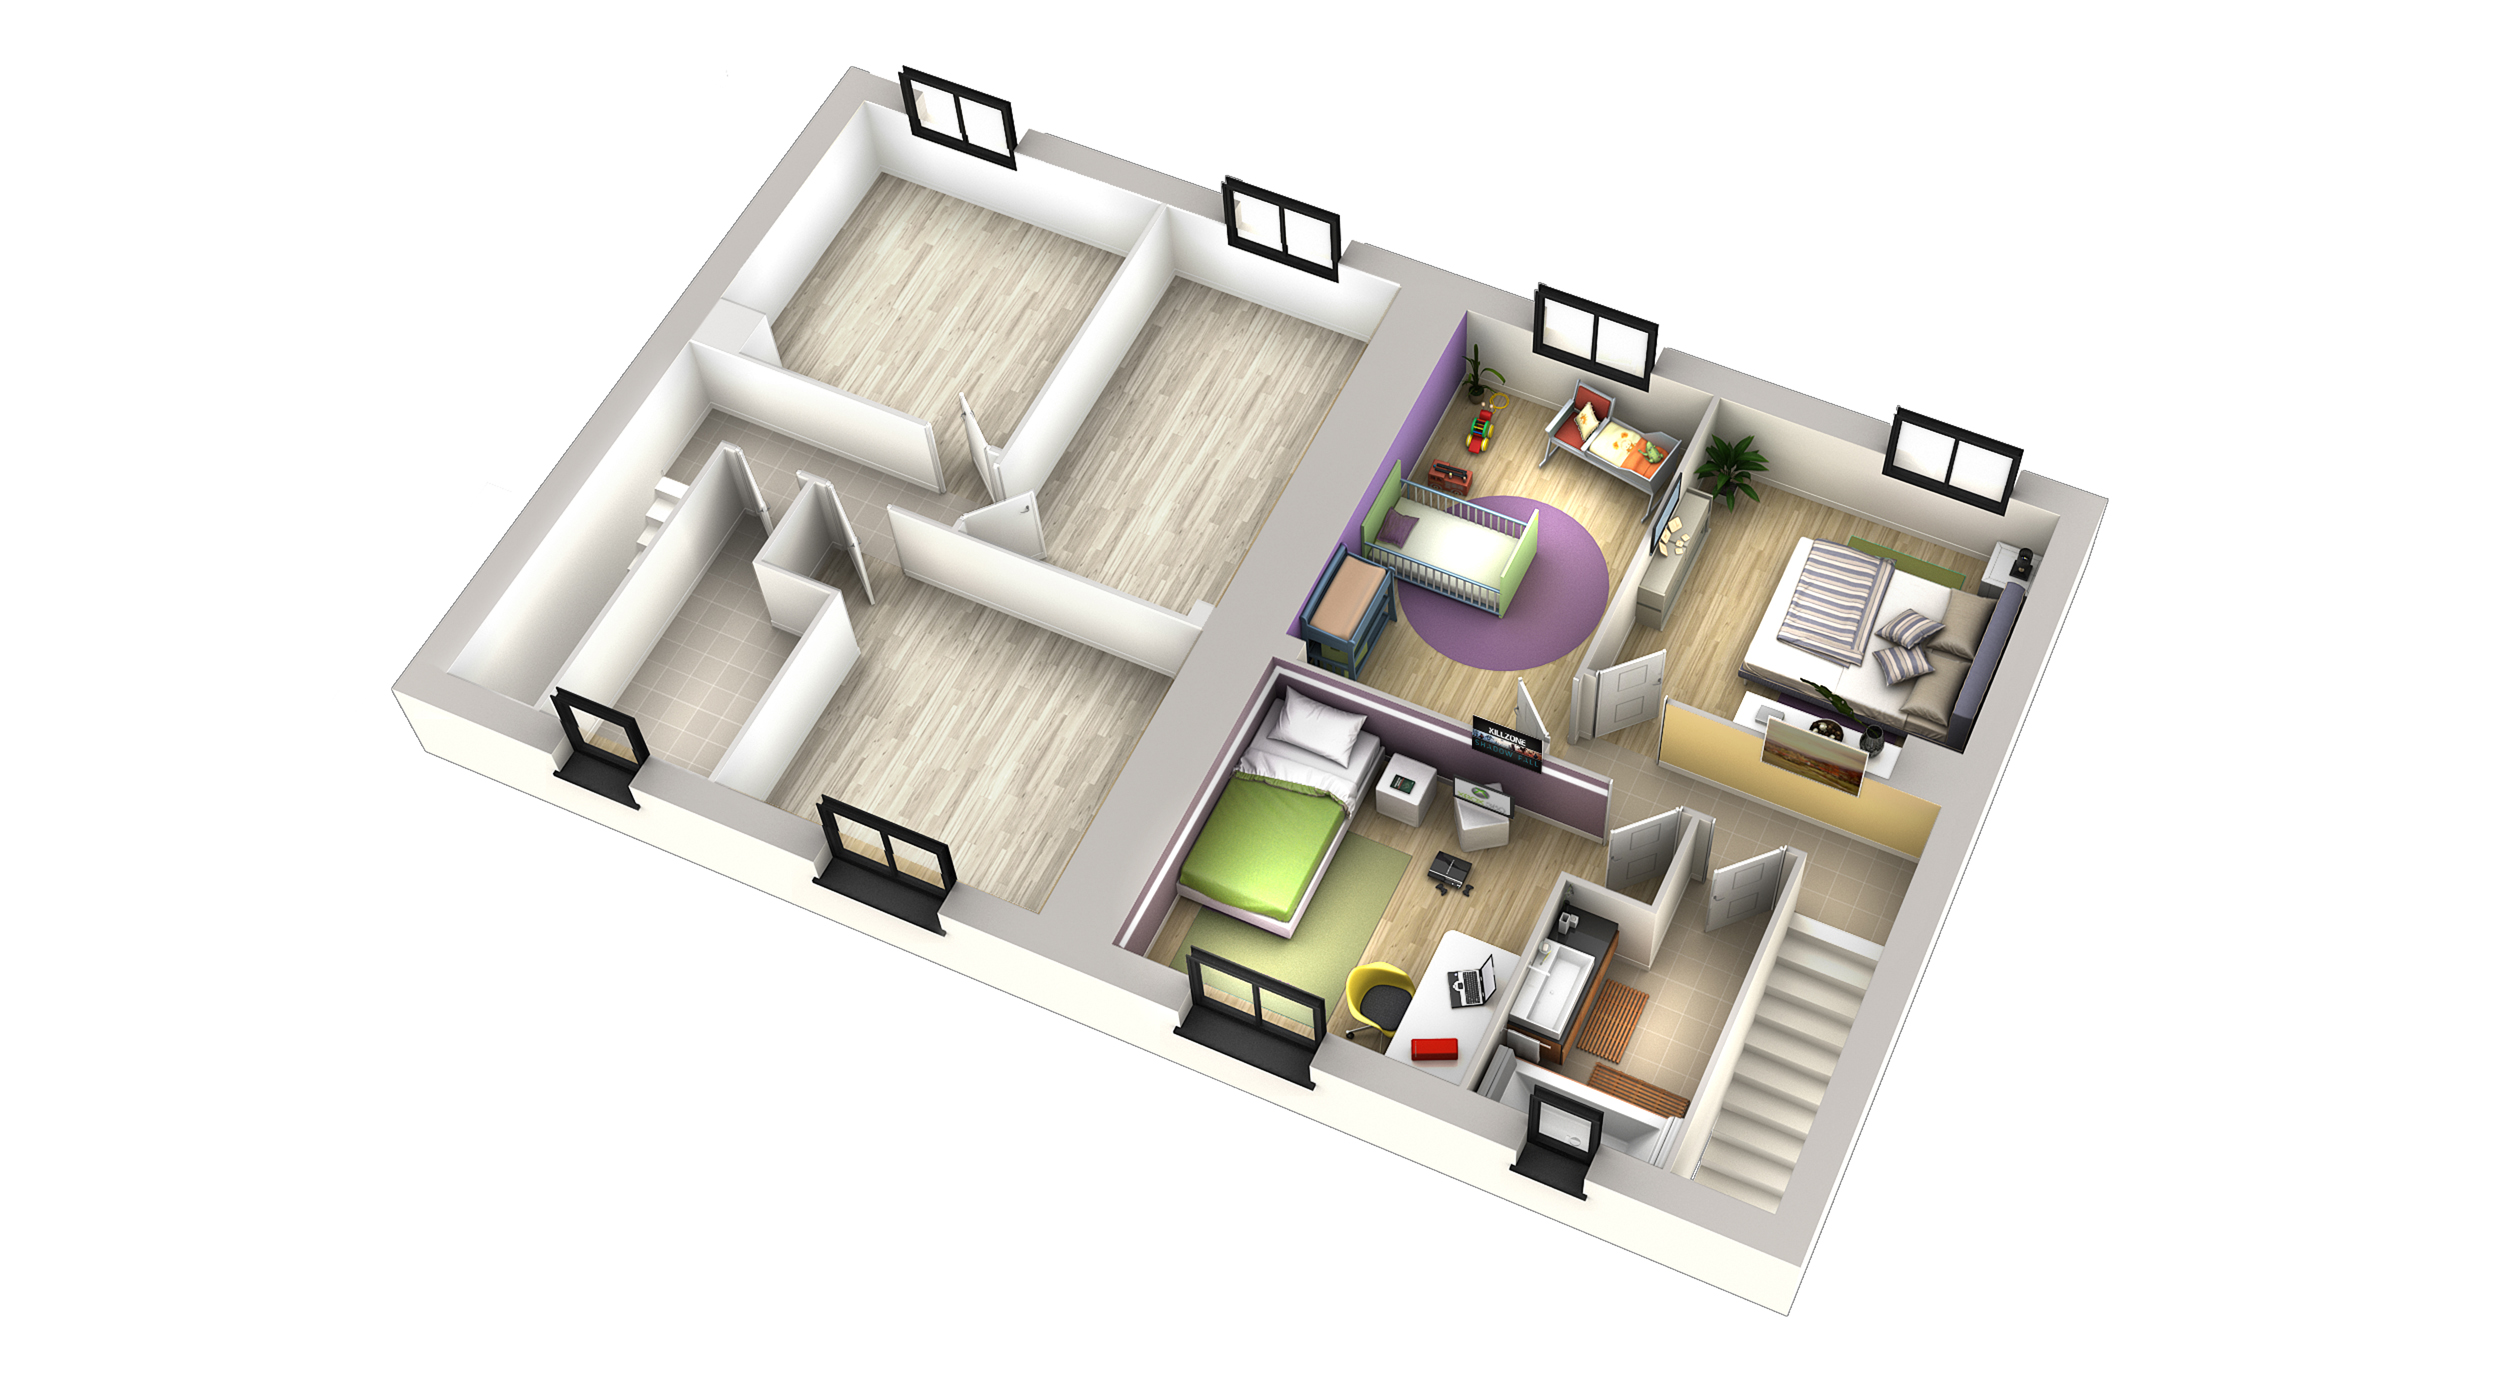 Plan maison contemporaine cumbava genoise villas club for Plan interieur maison en d